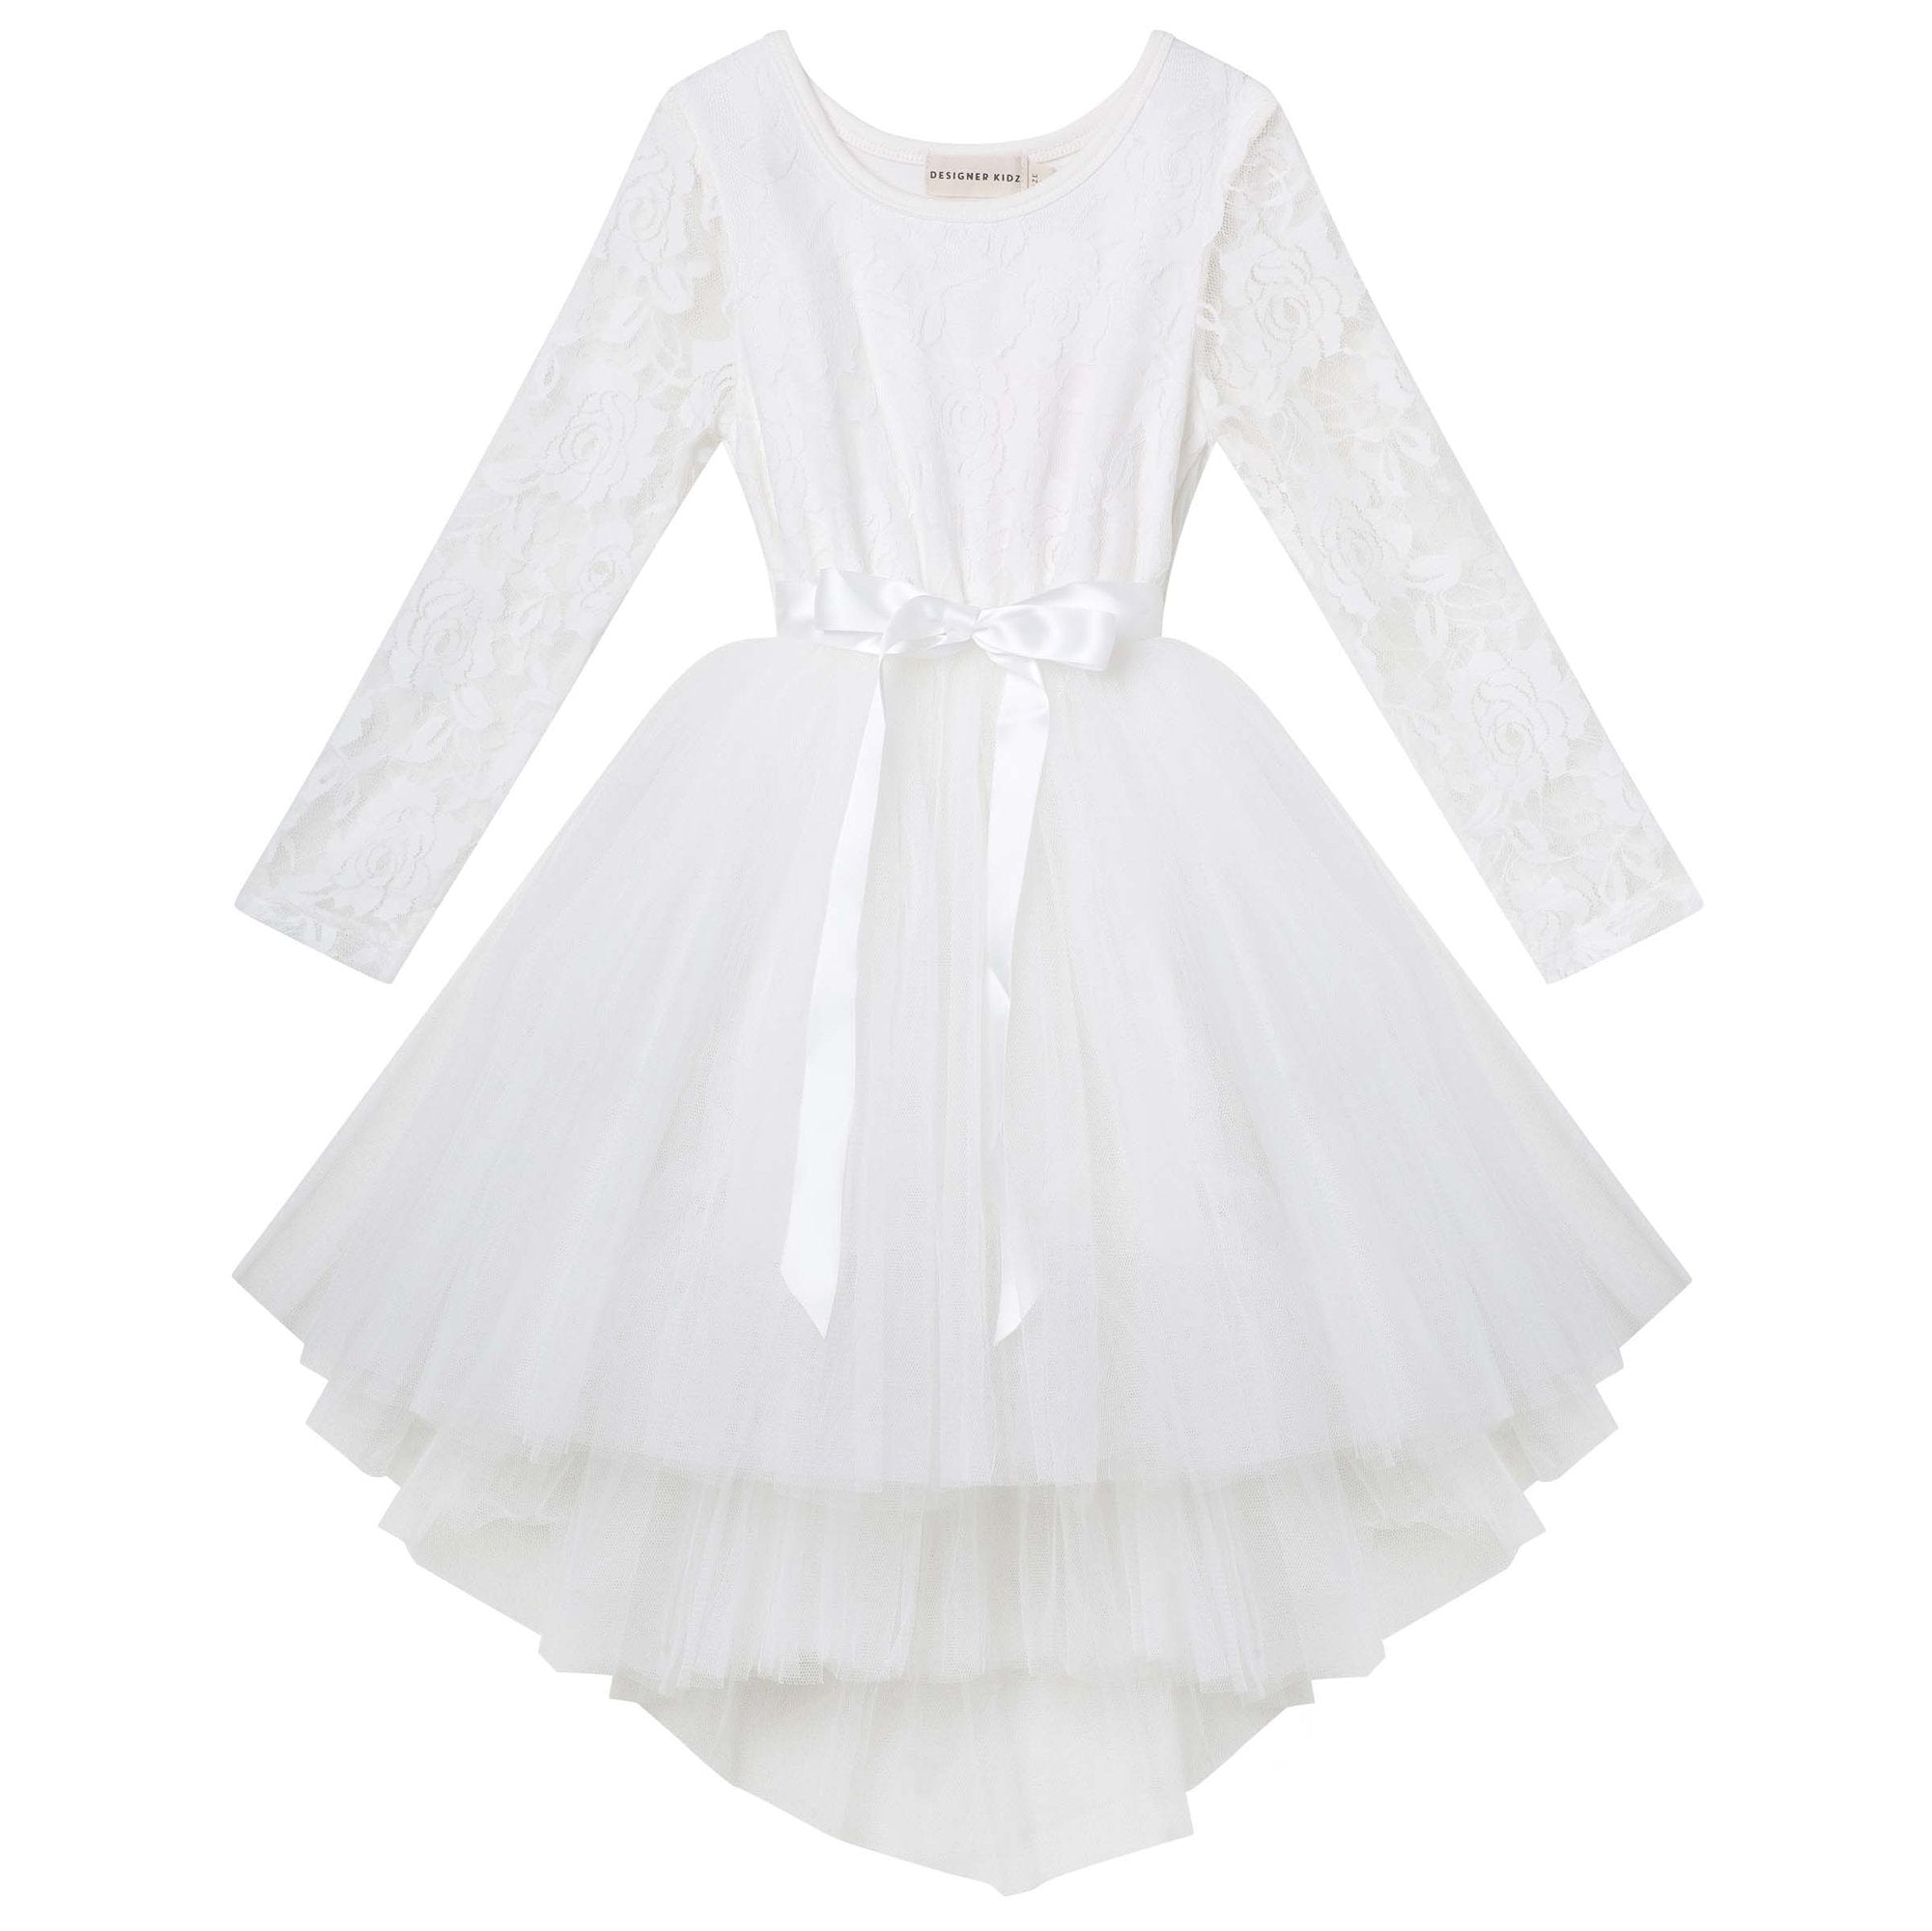 Designer Kidz Candi lace tutu dress - Ivory